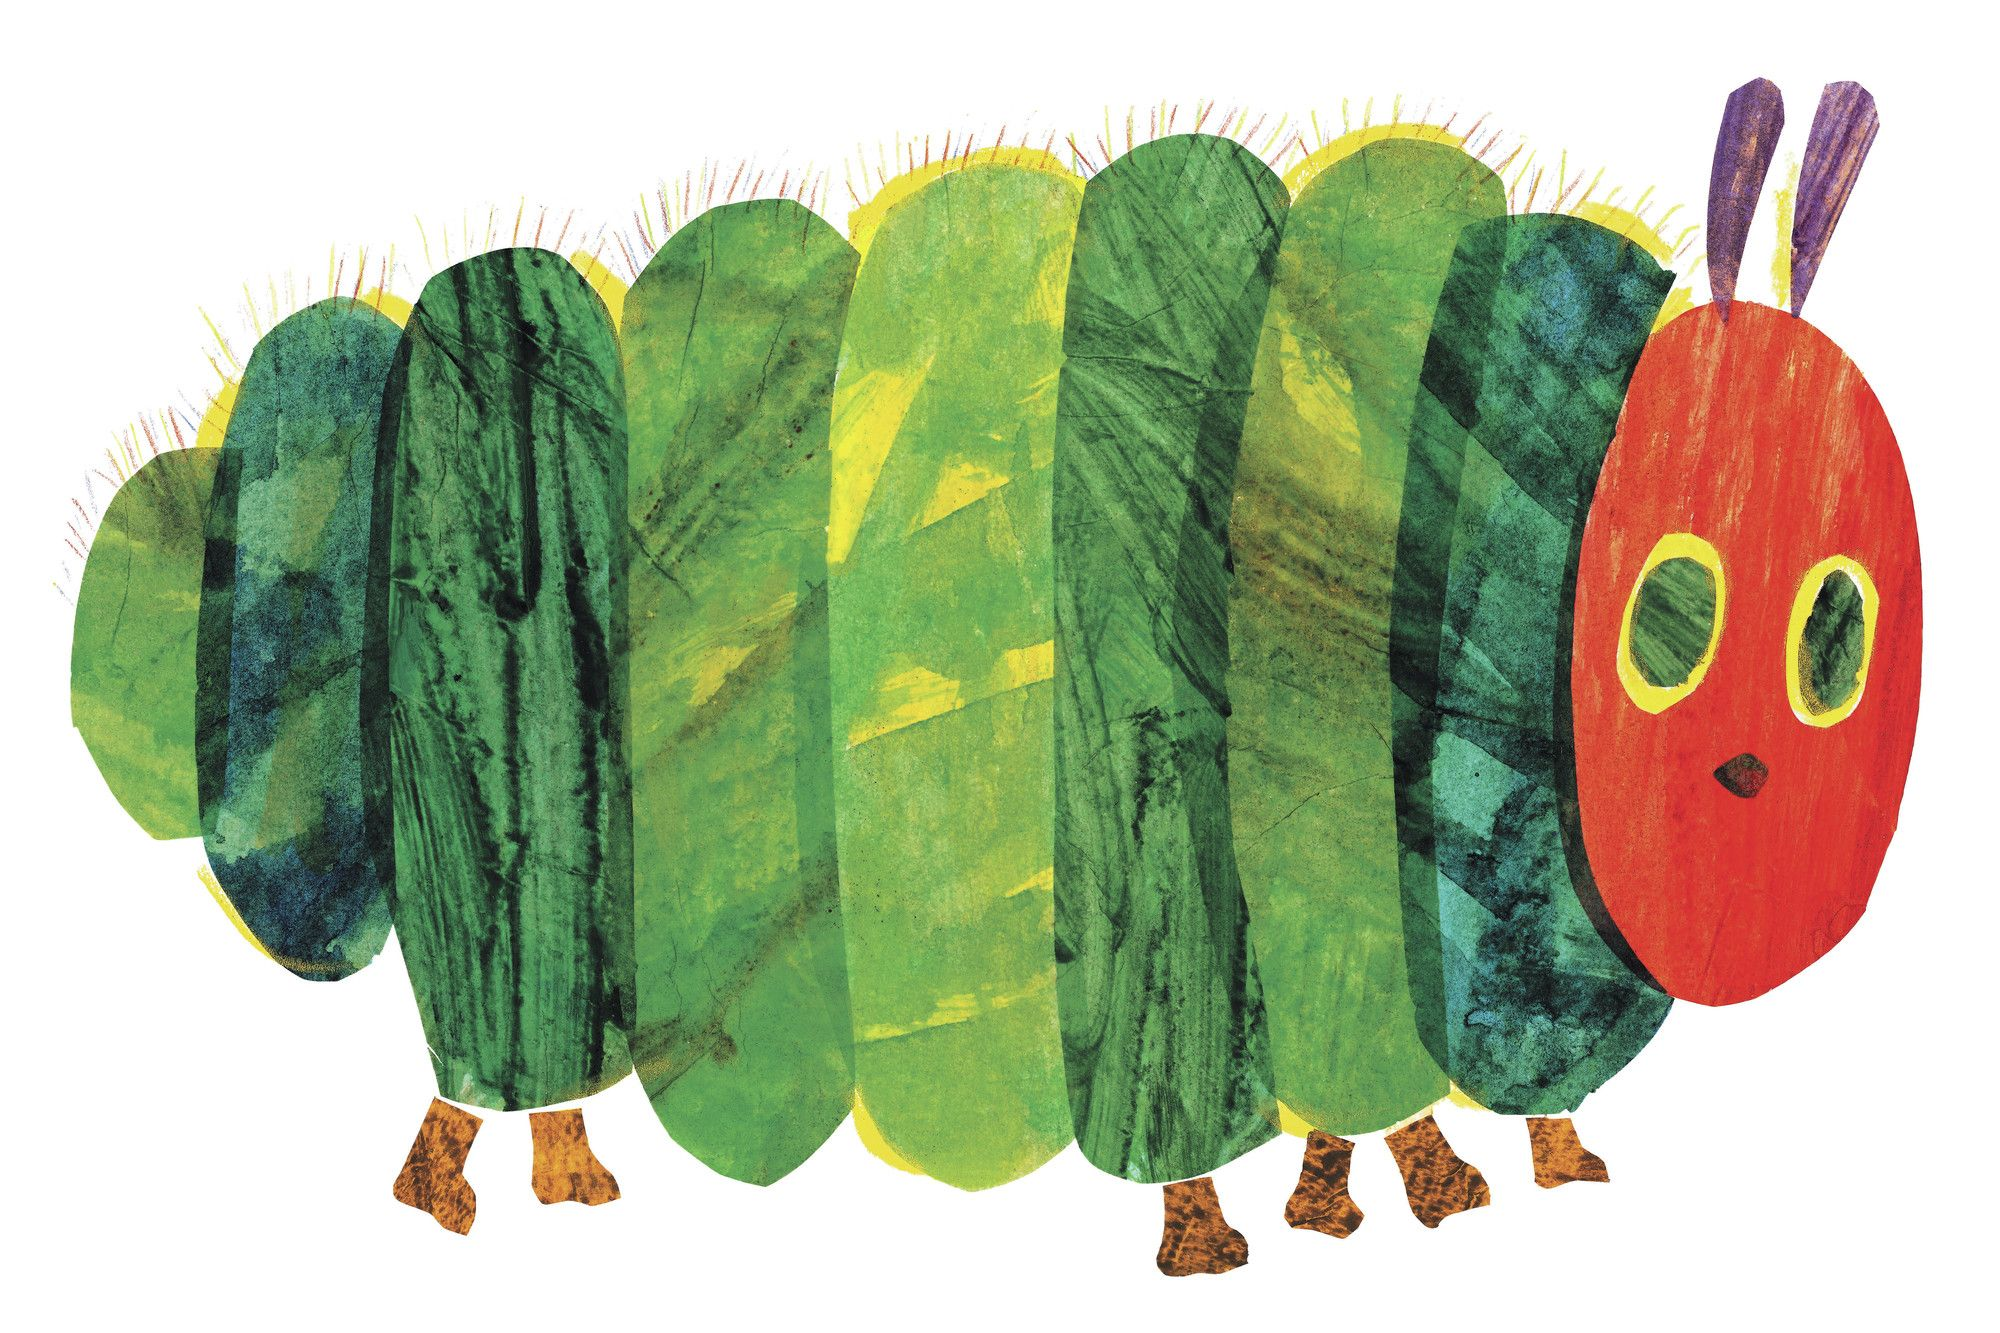 hight resolution of the very hungry caterpillar character caterpillar fat by eric carle painting print on wrapped canvas